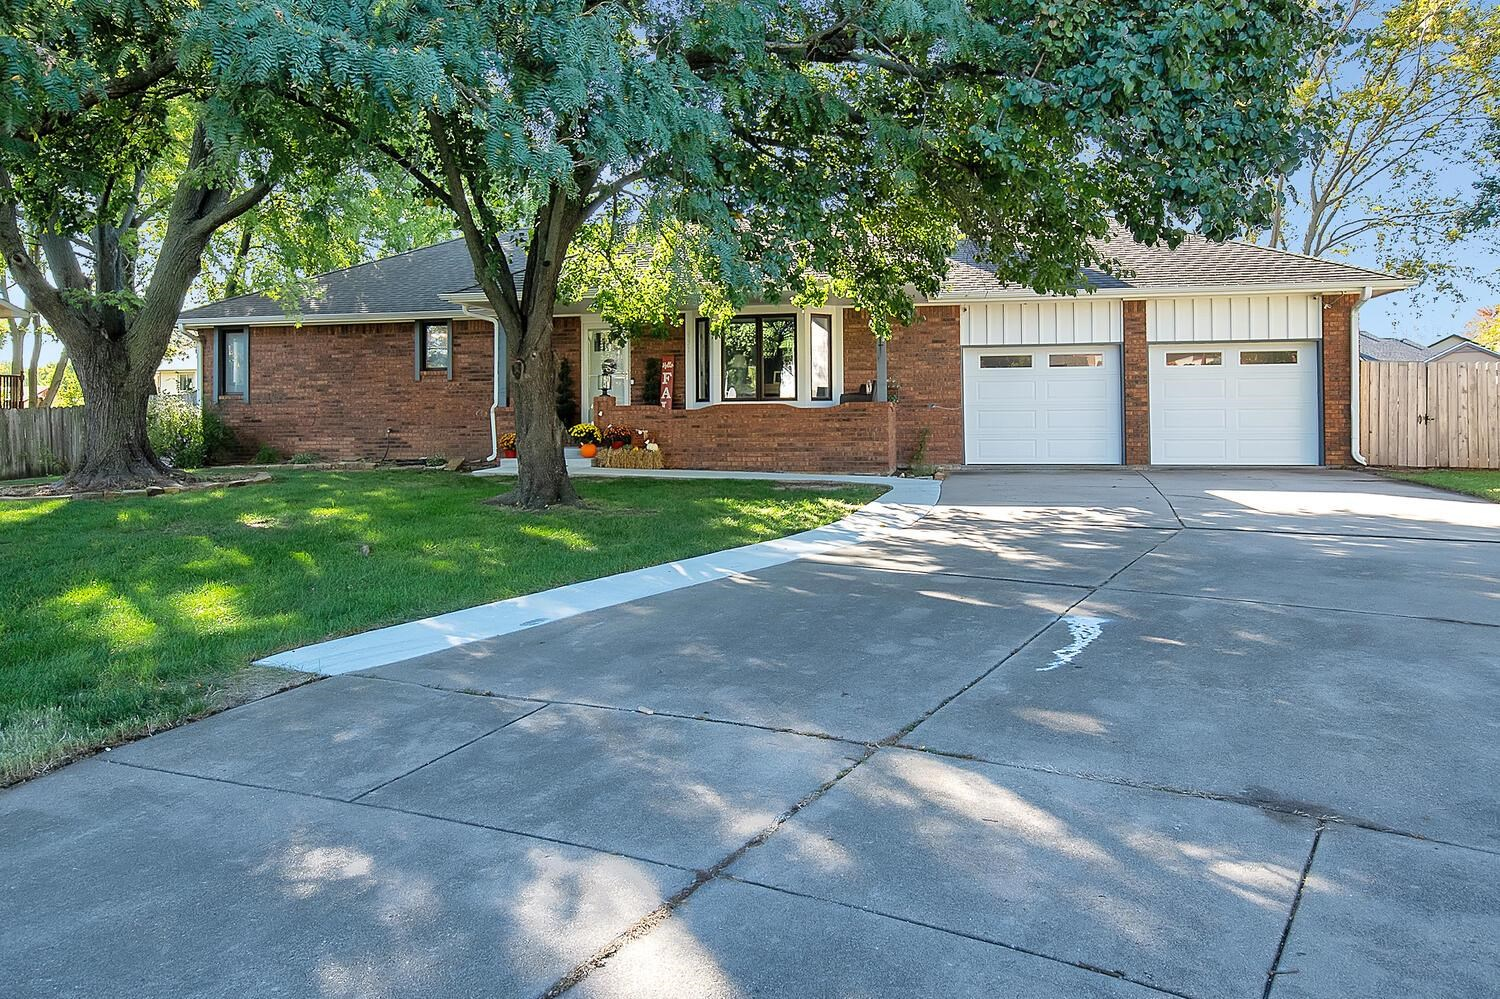 Newly remodeled home with a pool located in the sought after Andover School District! This all brick home has great curb appeal and is on a cul-de-sac lot. Seller's have made tons of upgrades to this beautiful 3 bedroom (4th non-conforming), 3 bathroom home located in Green Valley 1st addition! Beautiful new LVP floors have been added throughout the home and all woodwork has been freshly painted! The large main floor family room is flanked with an all brick fireplace perfect for cozying up this winter! Gorgeous granite countertops and new stainless appliances complete this amazing kitchen with patio doors leading to an awesome concrete deck and pool! The master bedroom has an adjoining remodeled master bathroom with a gorgeous vanity and walk-in shower. Two additional bedrooms are on the main floor. Downstairs has another large family/rec room, a 3rd bathroom, and an additional non-conforming bedroom! Don't miss out on this great home with no special taxes!